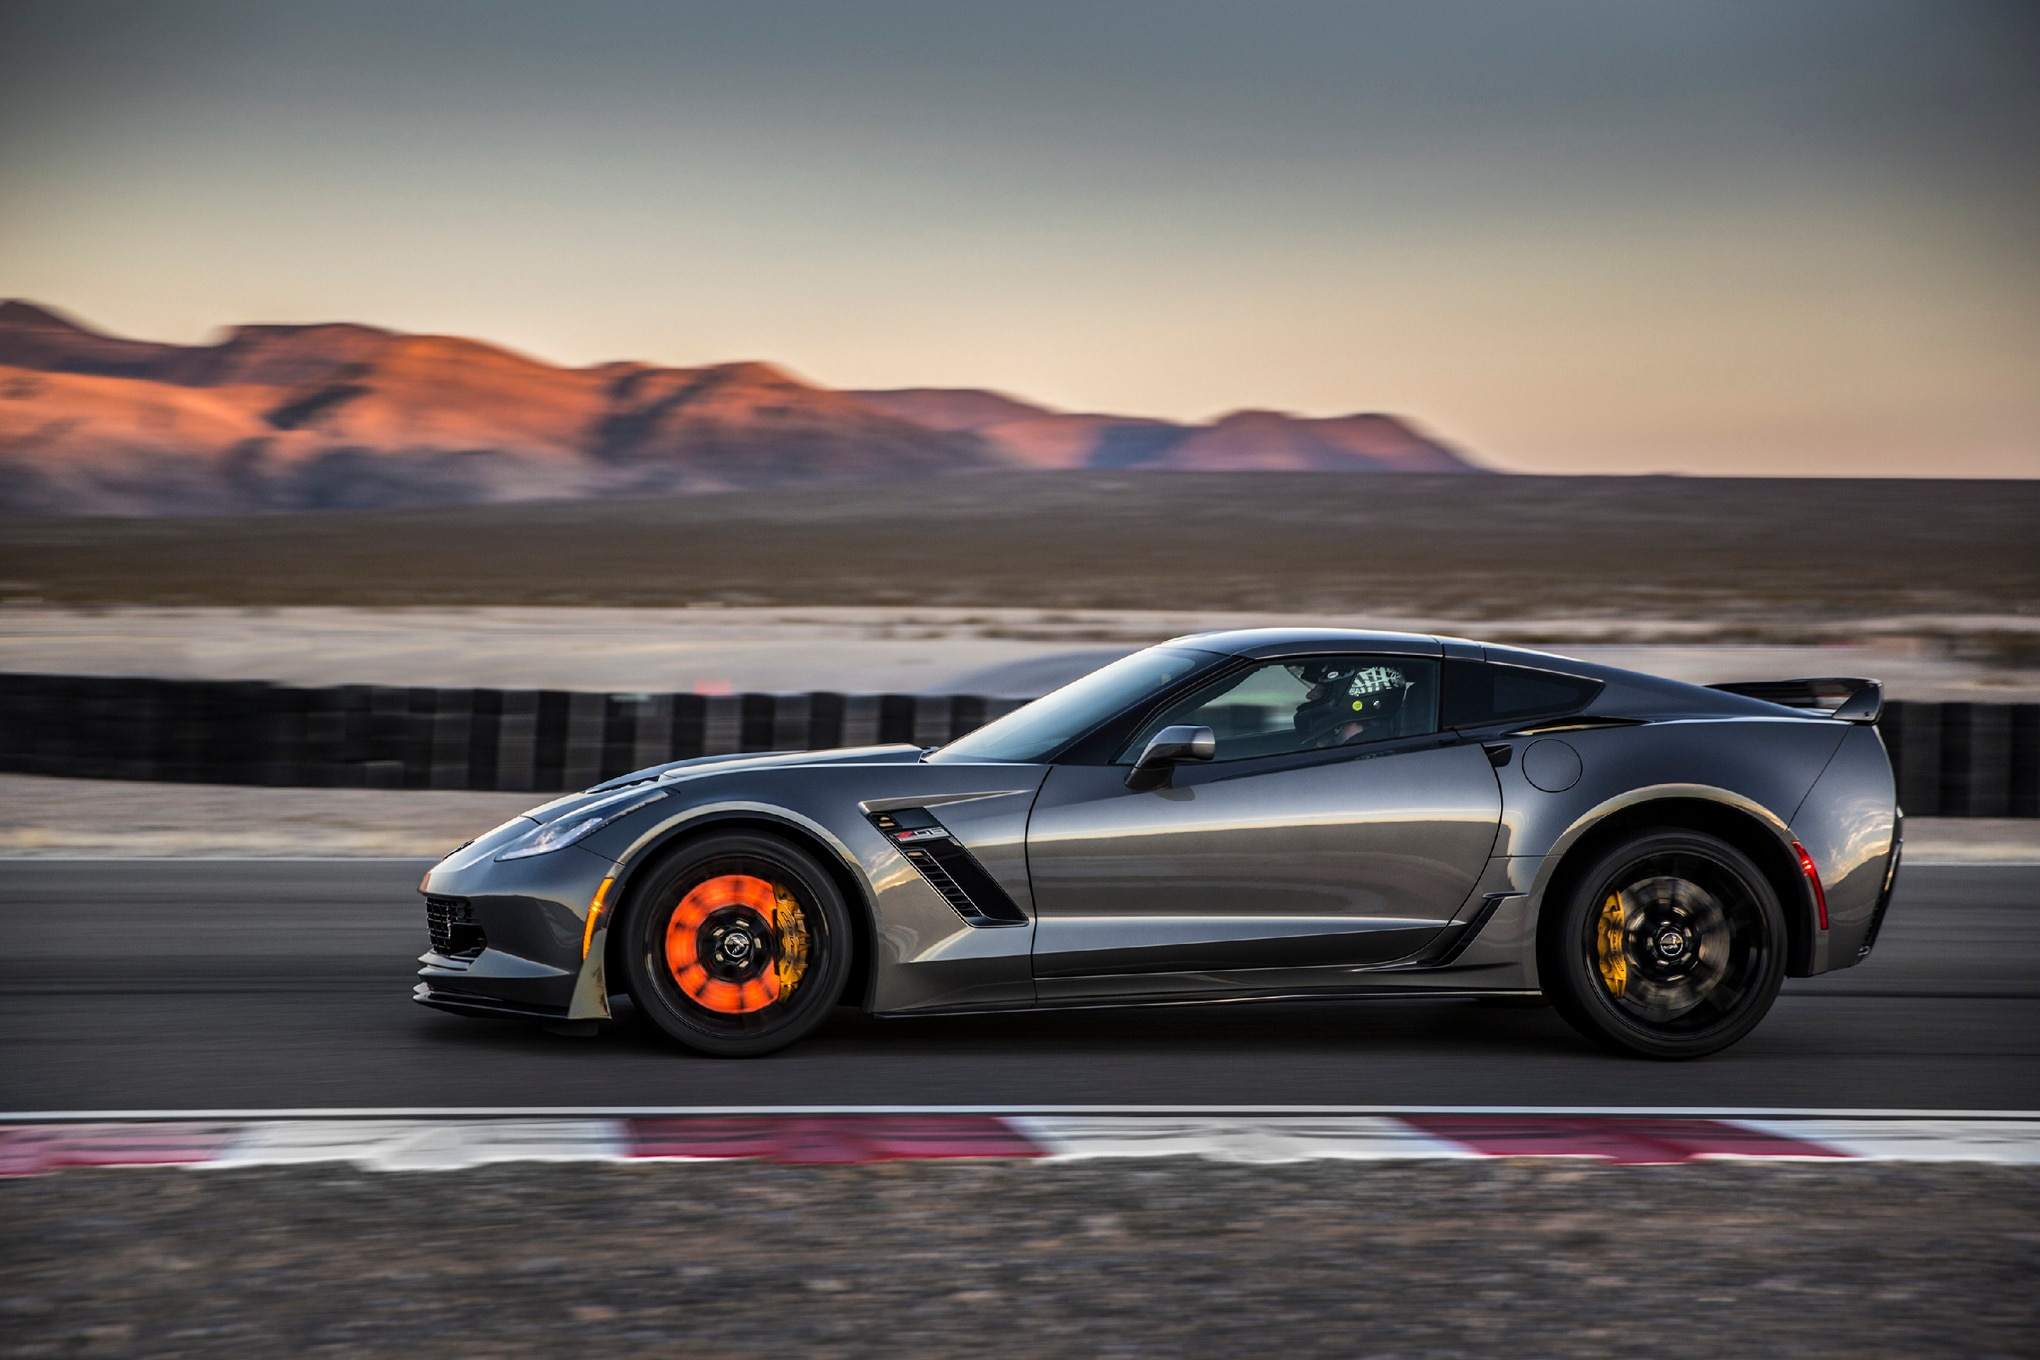 2015-Chevrolet-Corvette-Z06-side-03 Mesmerizing Porsche 911 Turbo Vs Z06 Cars Trend